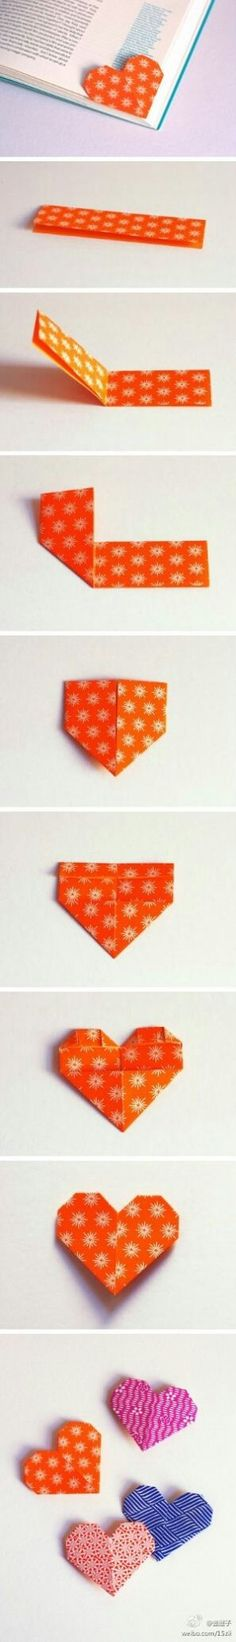 Origami- Origami sabine v.Appeldorn sabinevappeldor Kreatives Origami sabine v.Appeldorn Origami sabinevappeldor Origami Kreatives Origami sabine v. Diy Origami, Origami Paper, Heart Origami, Origami Tutorial, Origami Ball, Origami Instructions, Origami Boxes, Dollar Origami, Origami Stars